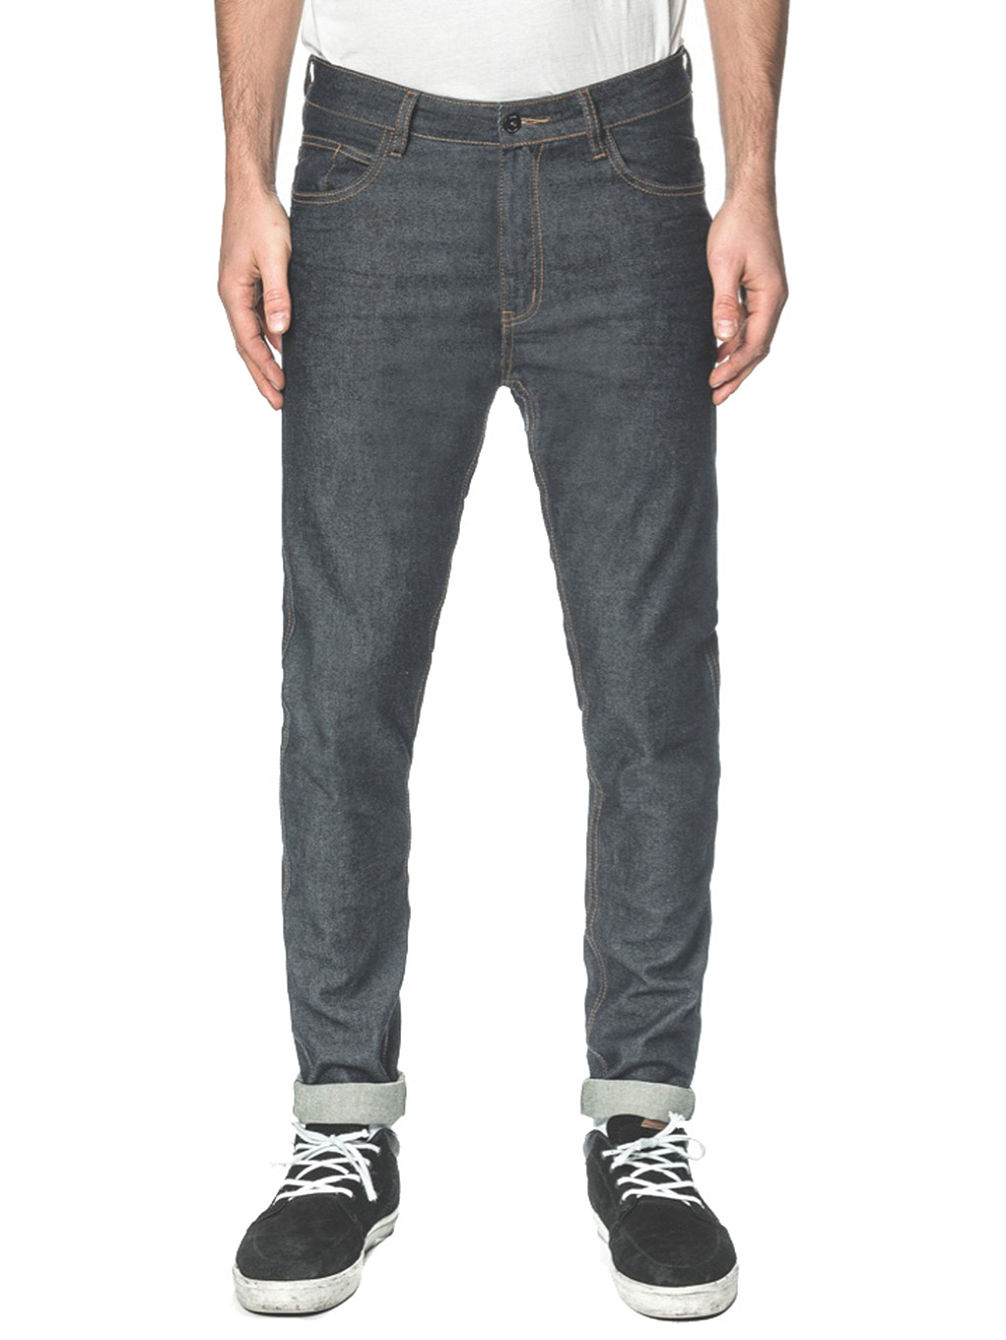 G.03 Tapered Slim Jeans